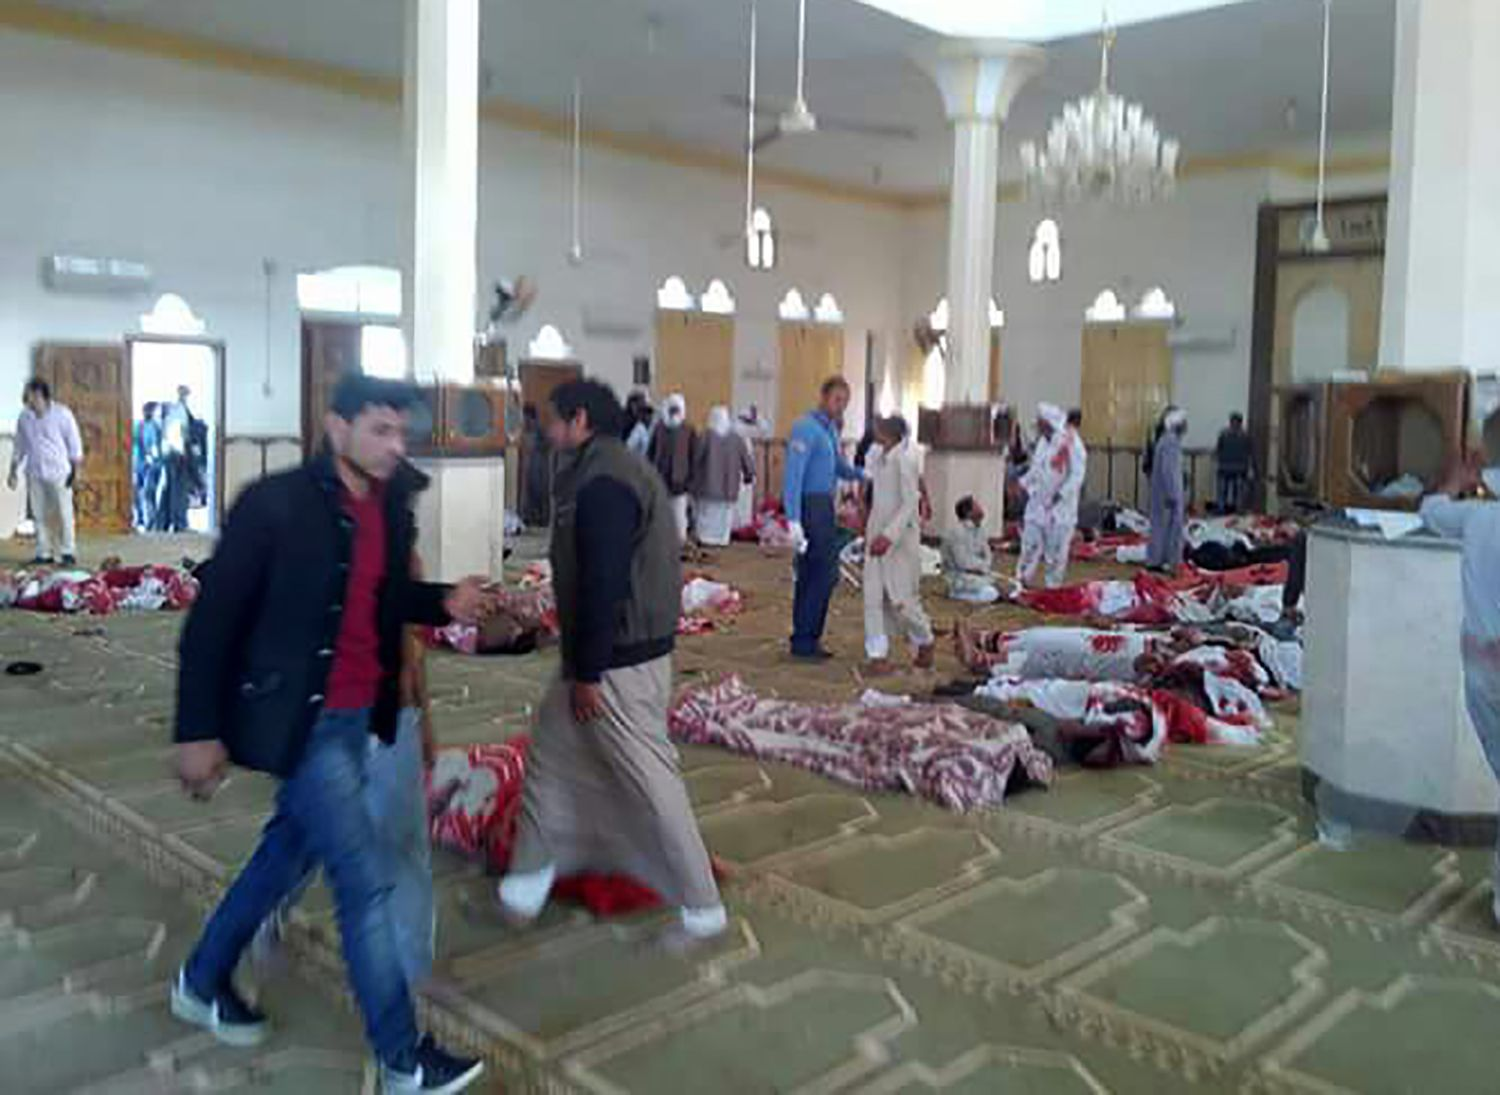 Photos: Hundreds killed in Egyptian mosque in country's worst terror attack, world leaders condemn violence